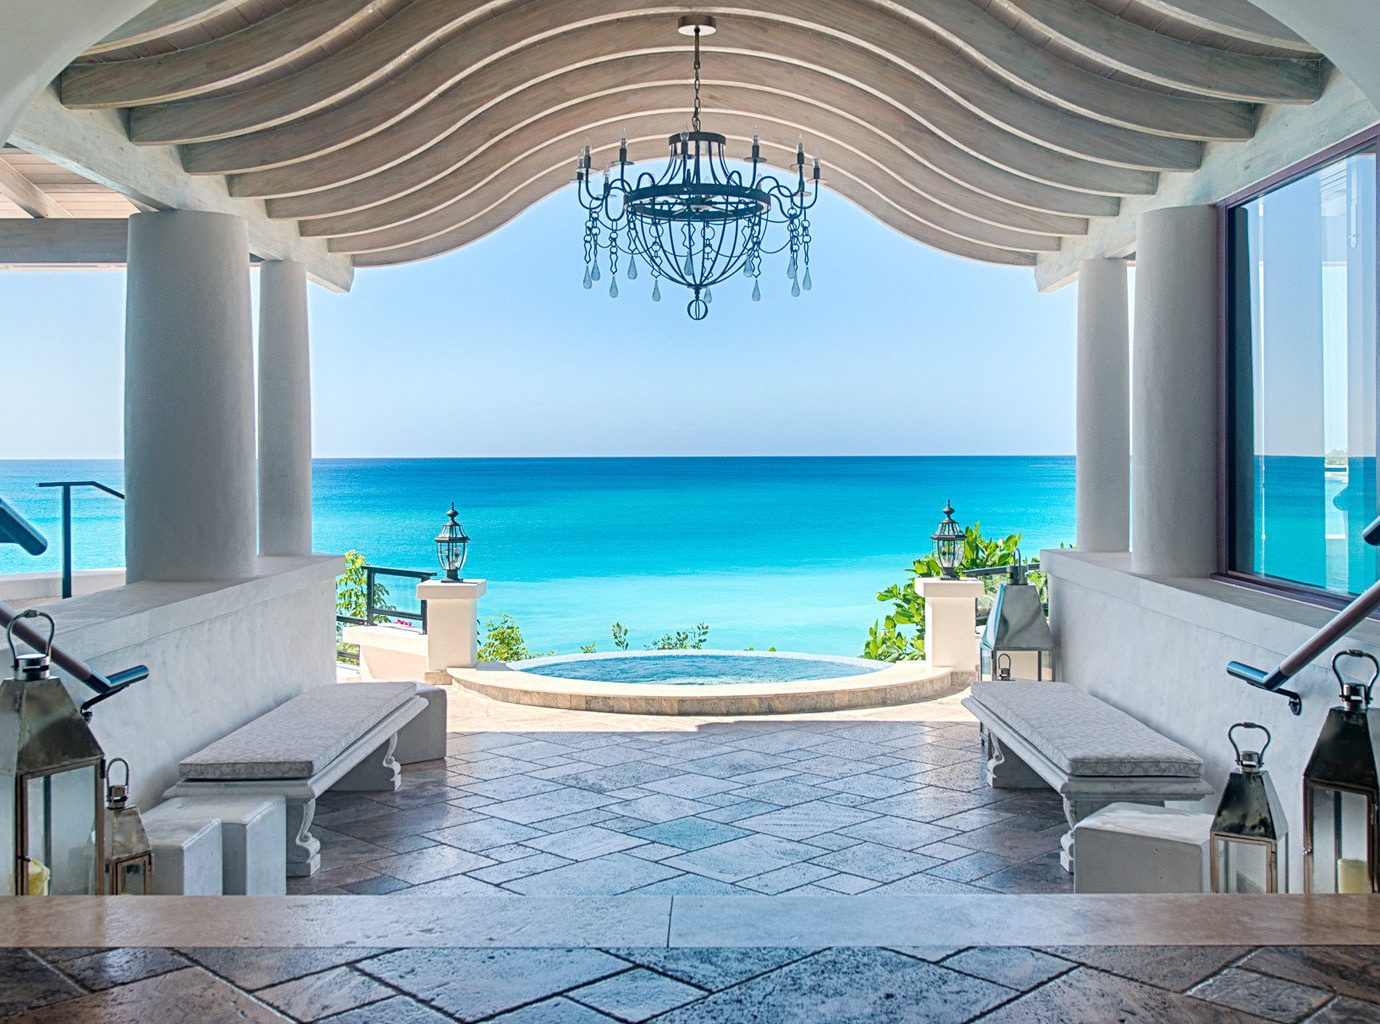 Beachfront Family Luxury Resort swimming pool property Villa condominium mansion home caribbean